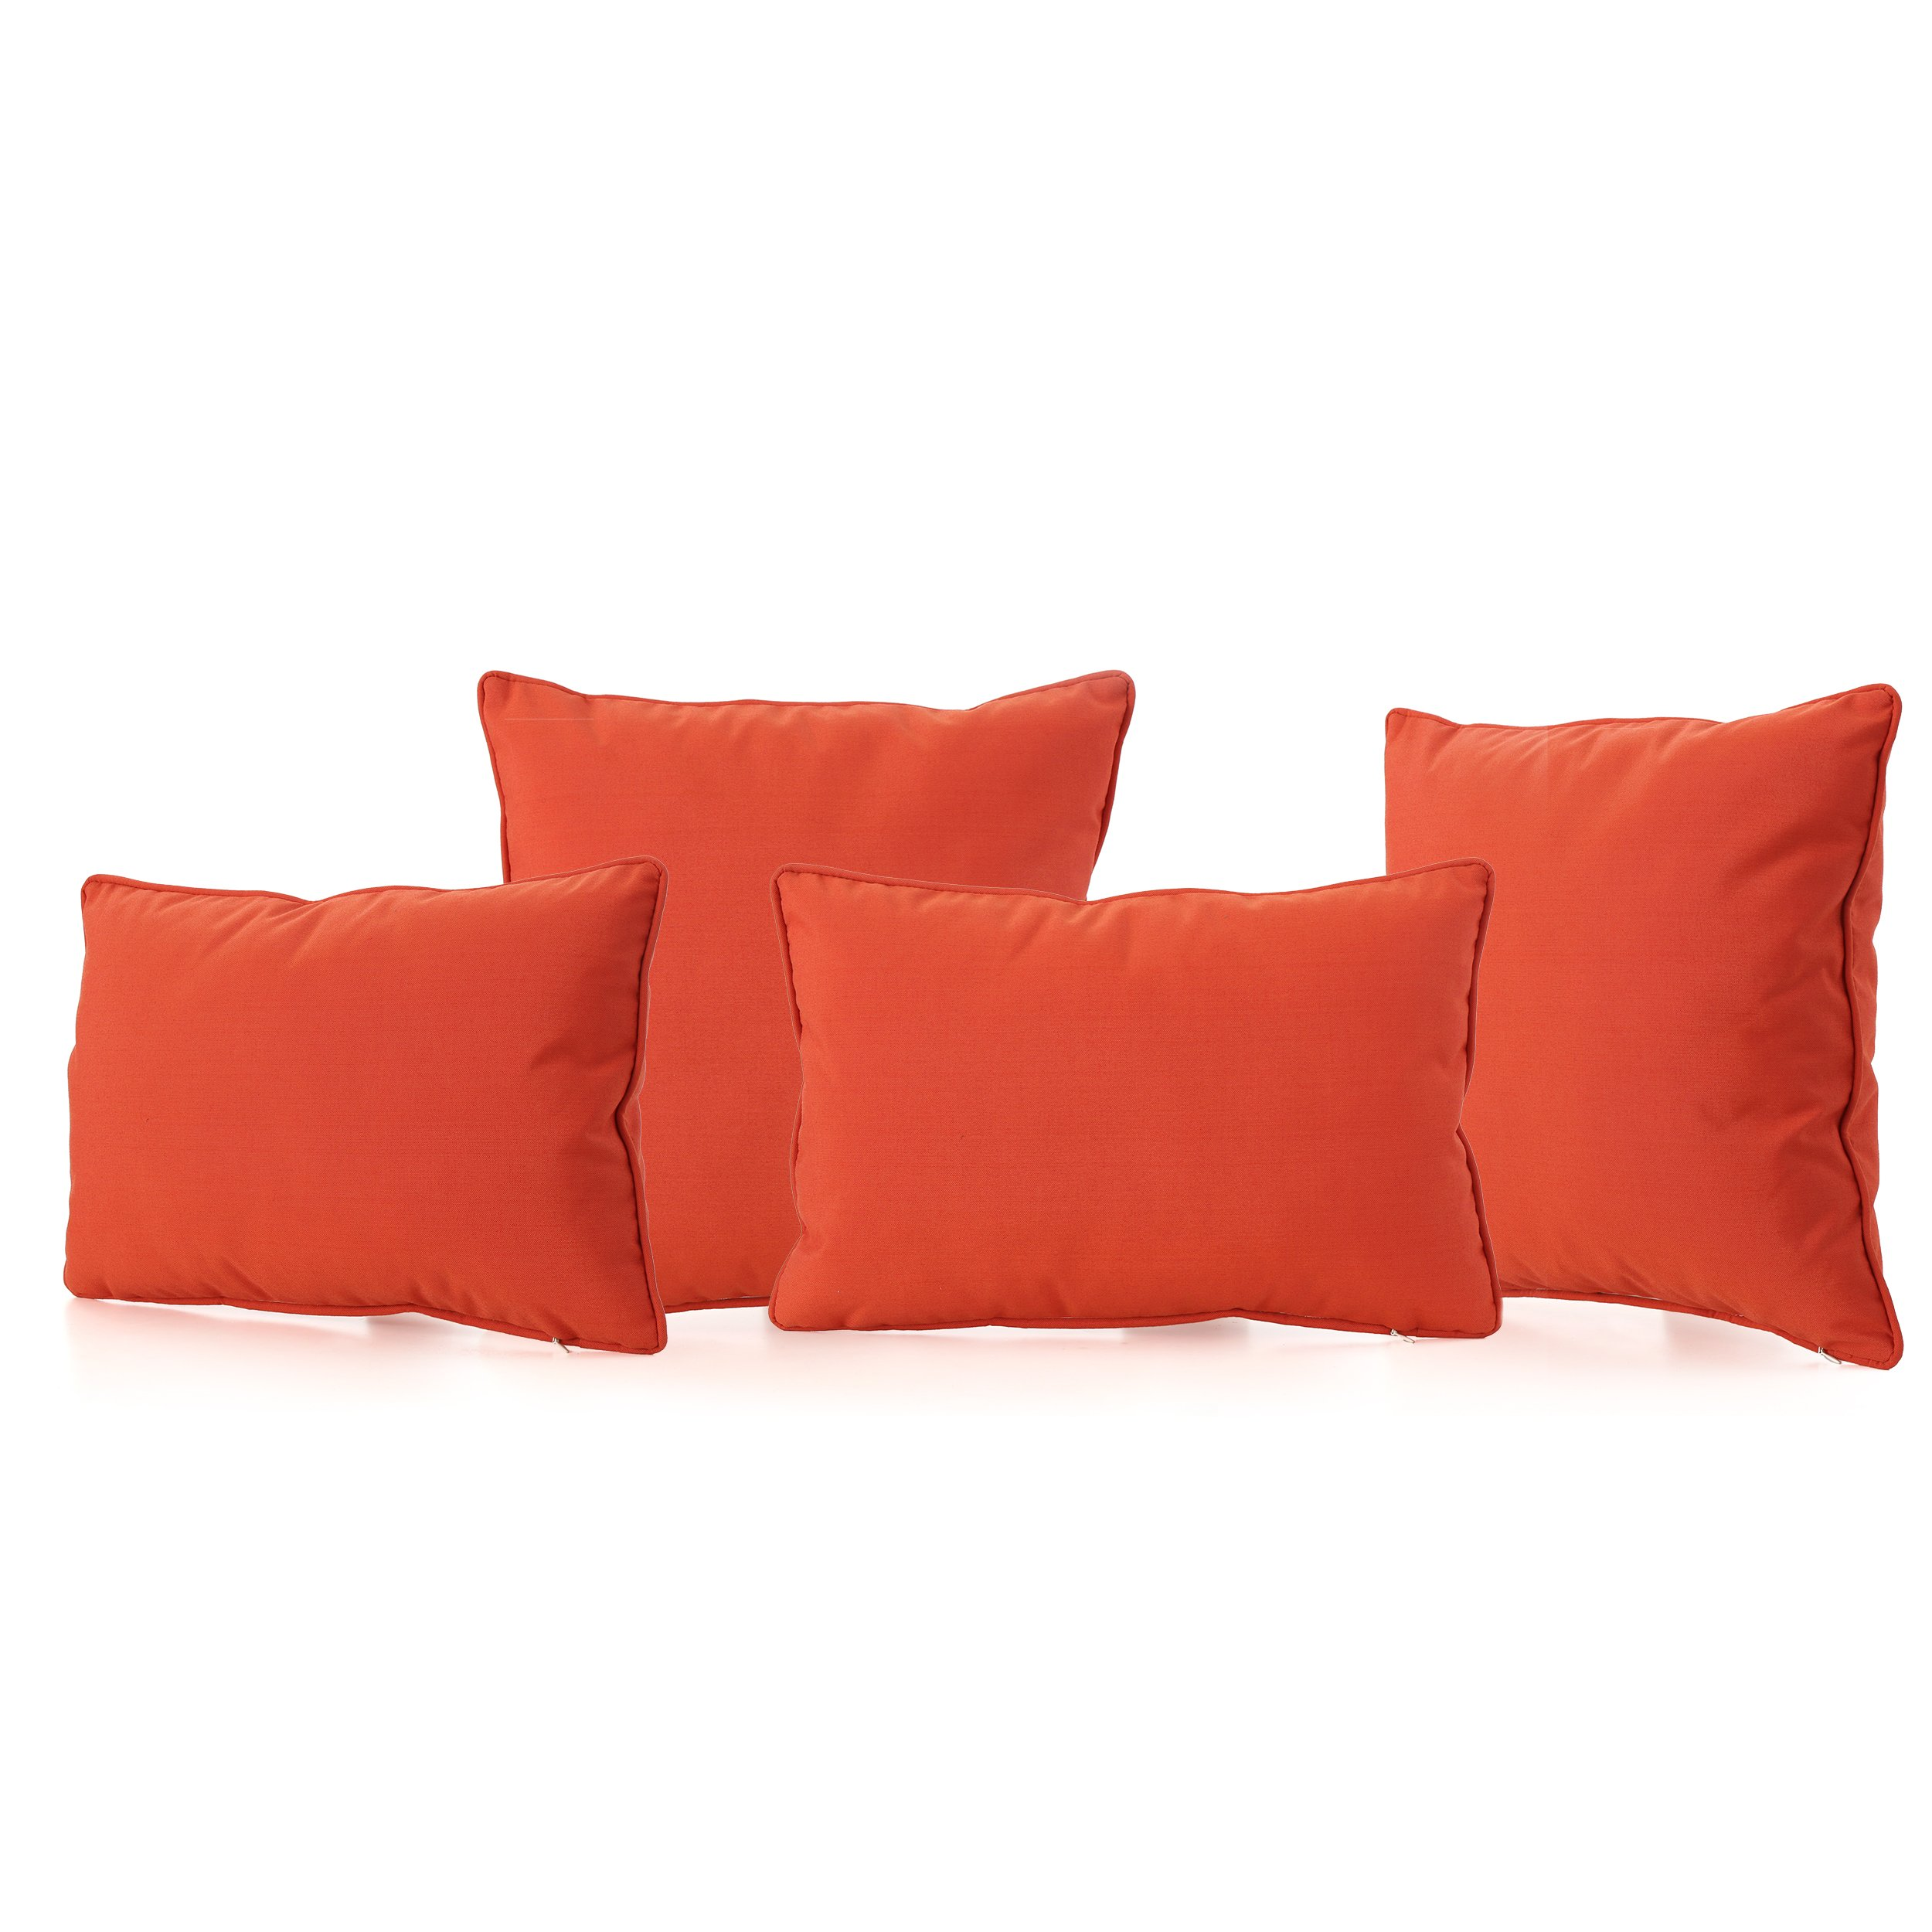 GDF Studio 300765 Corona Outdoor Patio Water Resistant Pillow Set (4, Orange)